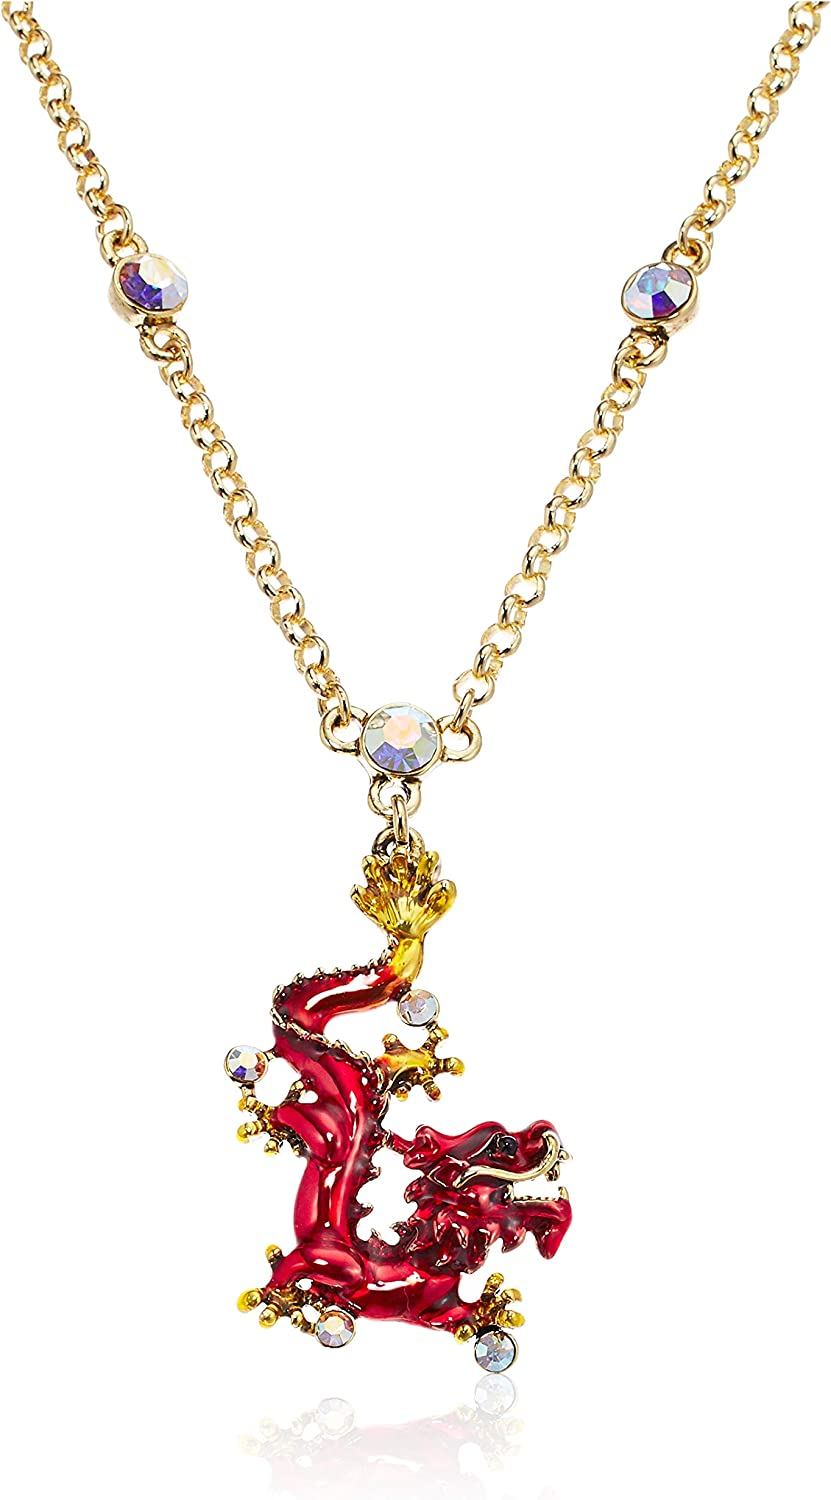 Superchic Red and Blue Enamel Chinese Dragon Necklace Embedded with Austrian Crystals and Gold Plating (Blue)